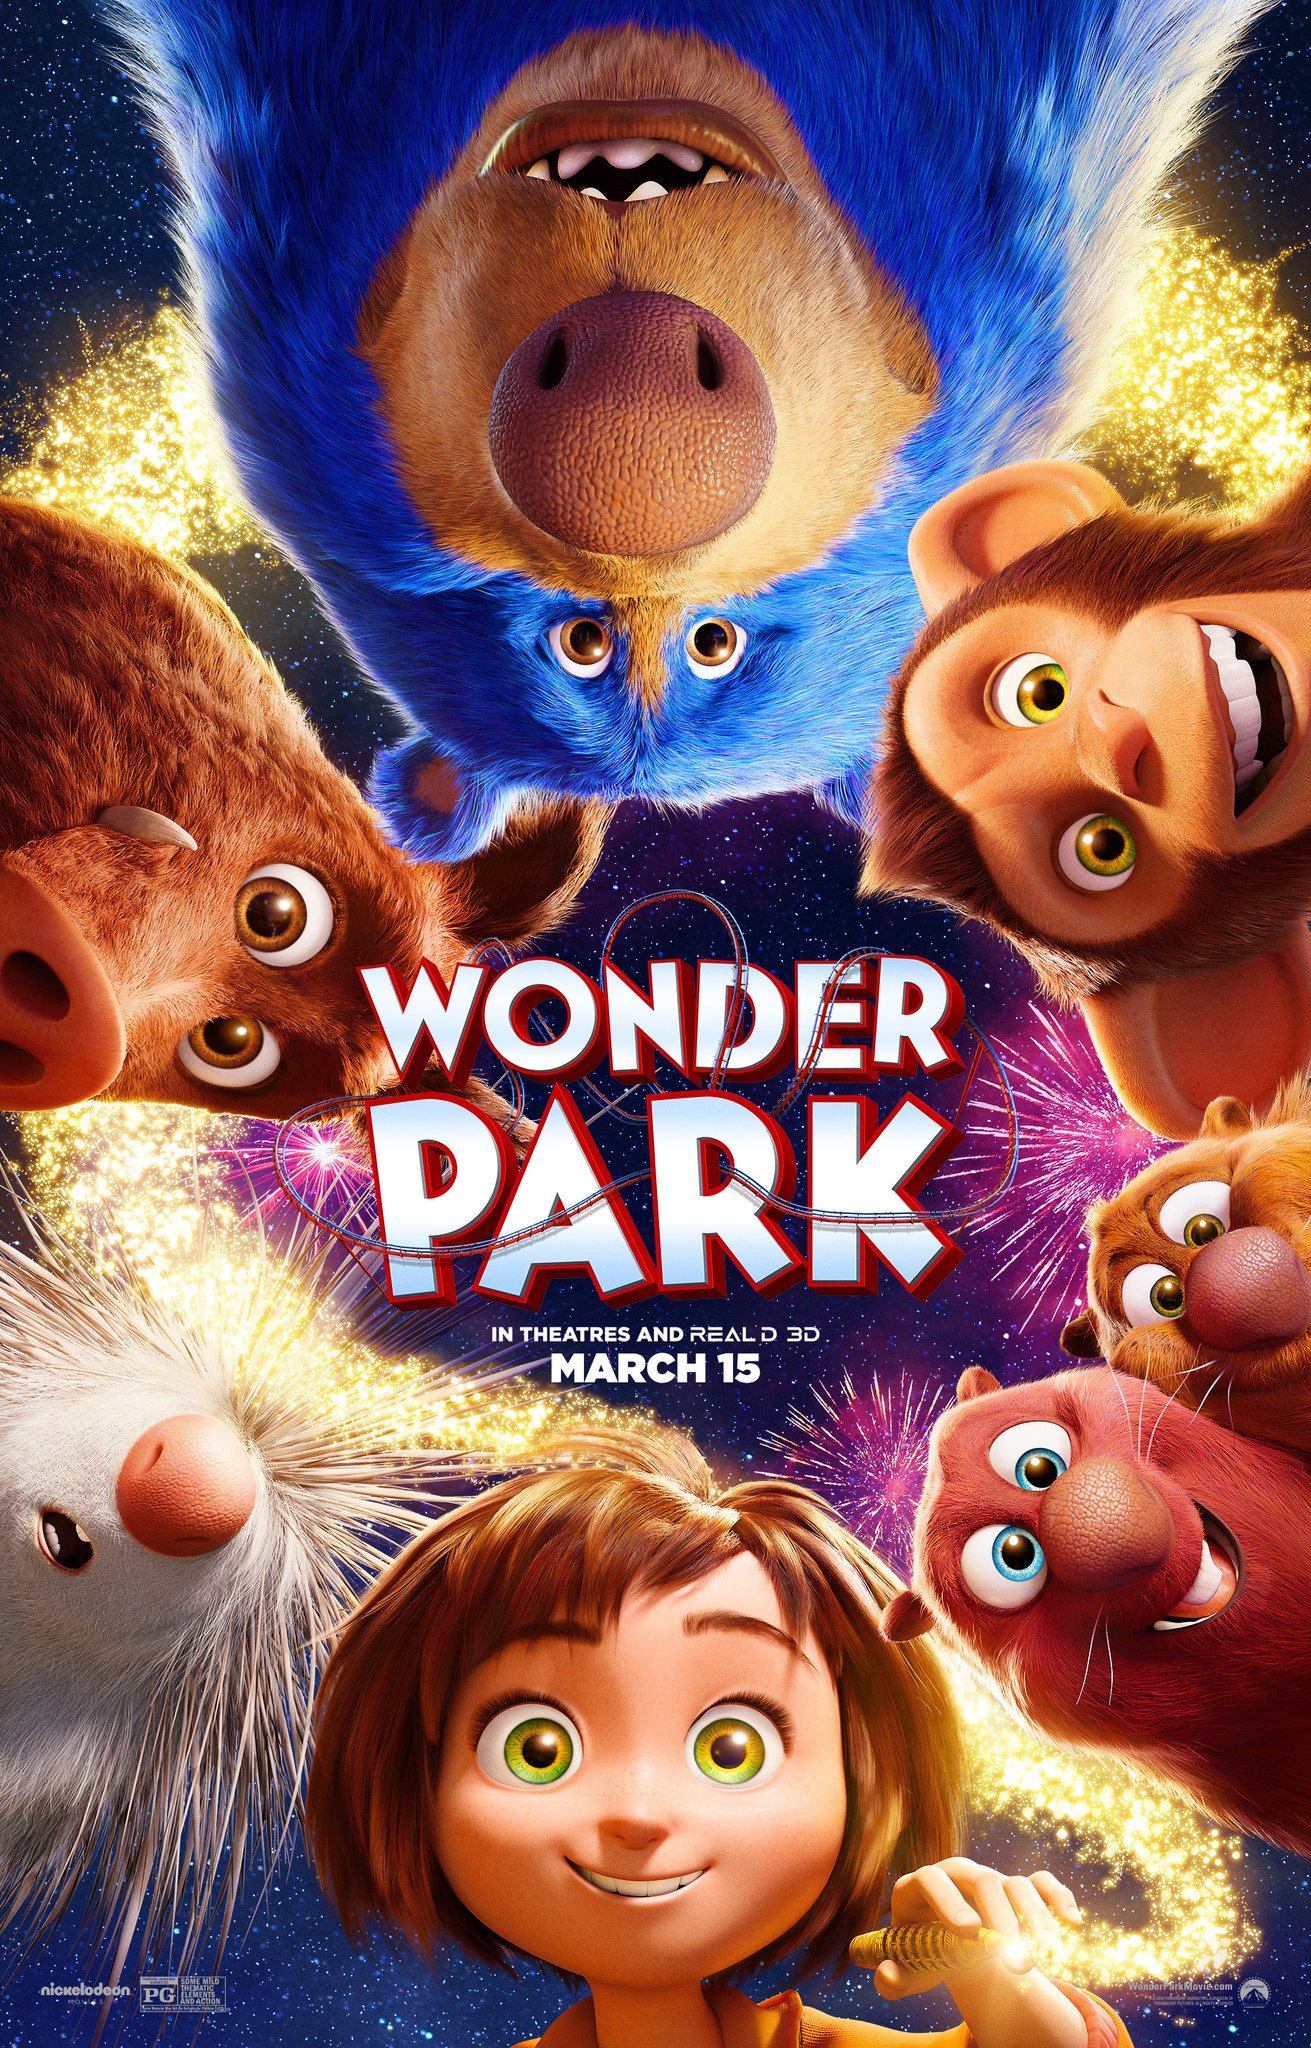 Image result for wonder park movie poster